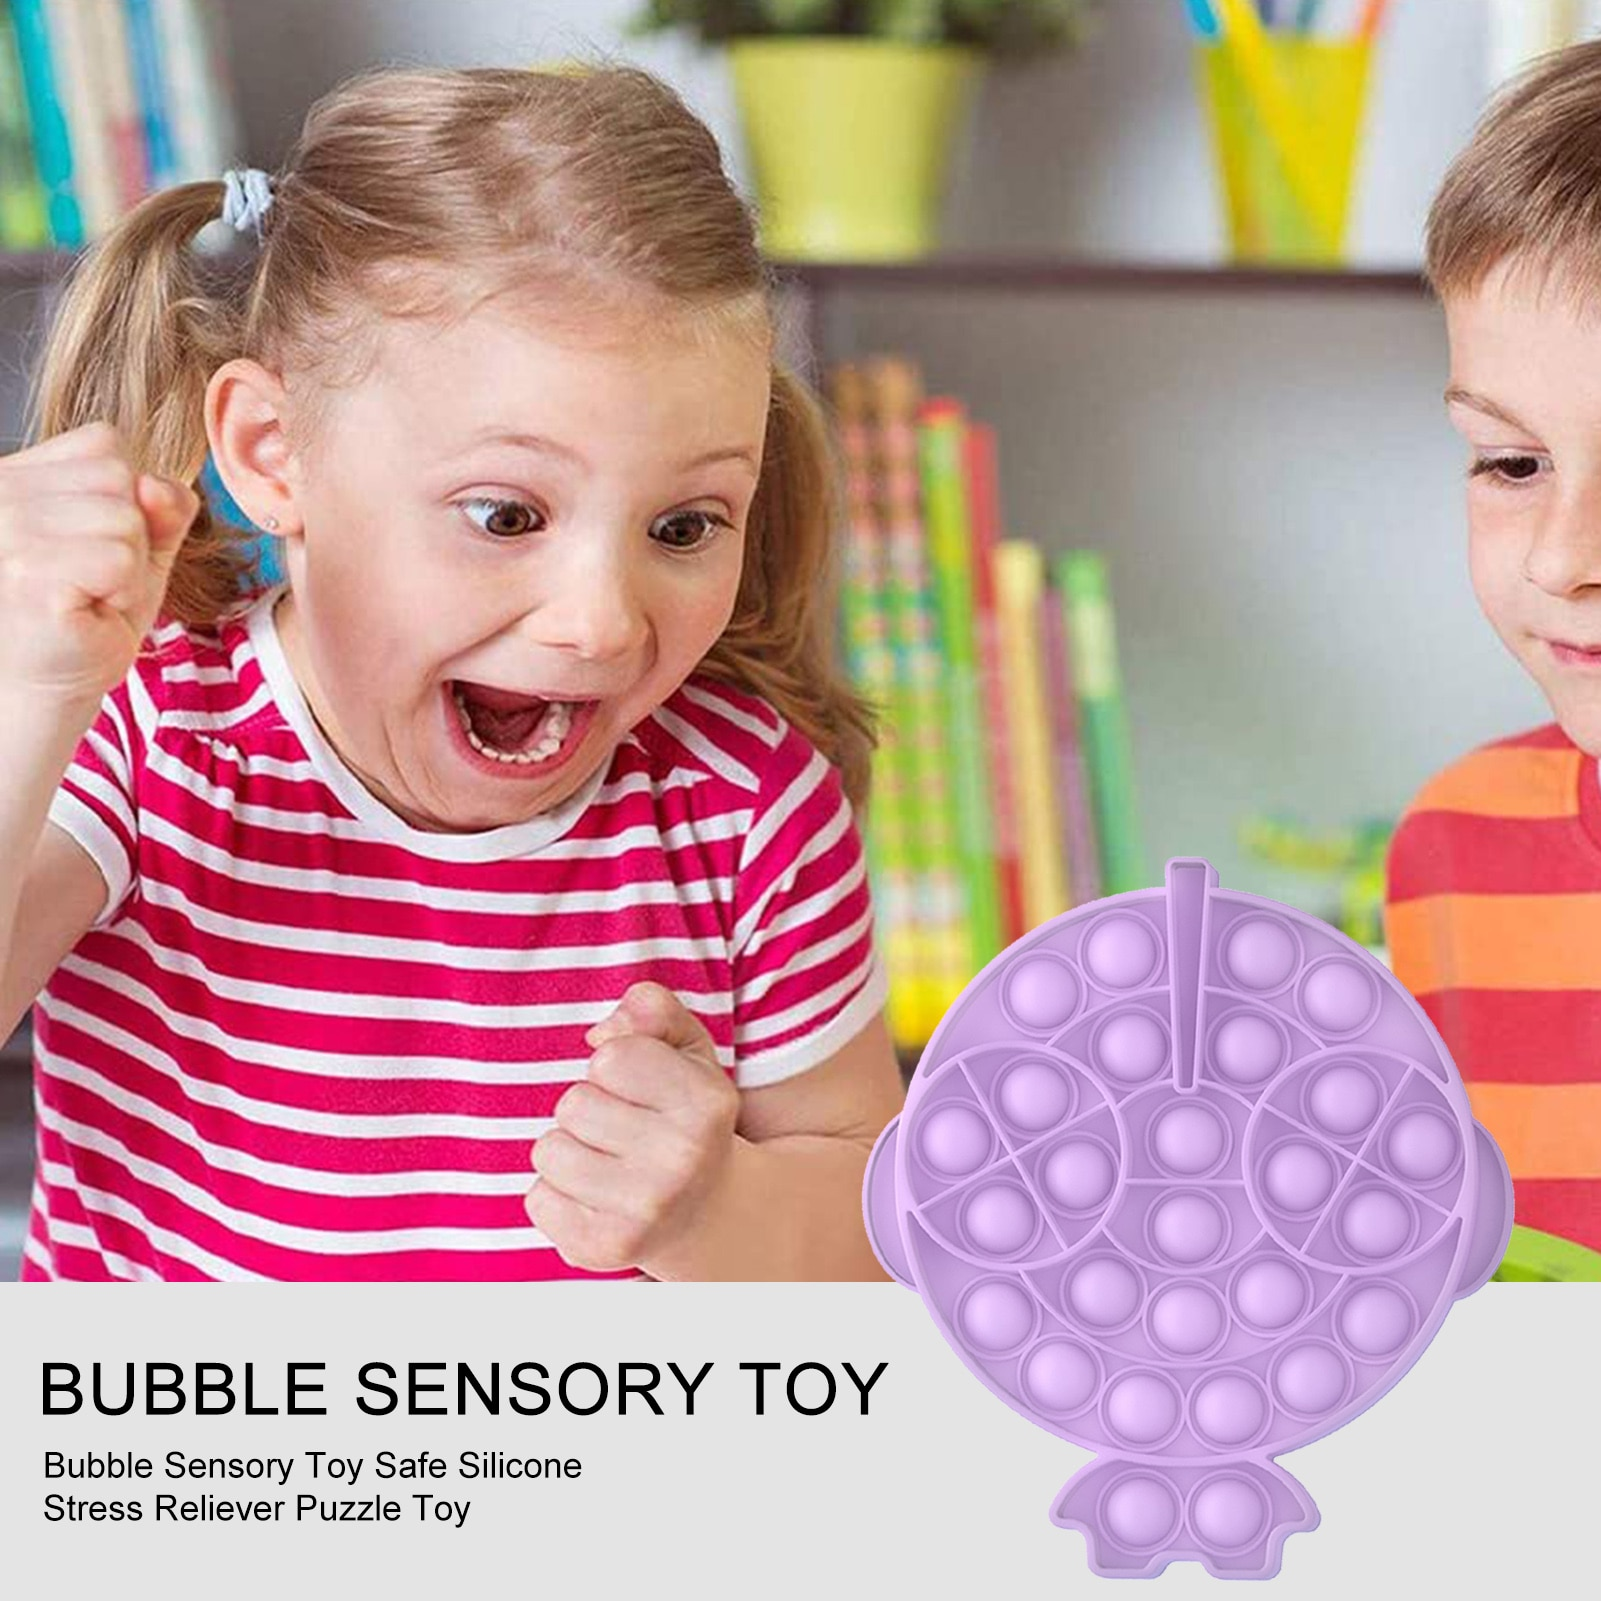 Funny Bubble Sensory Toy Safe Silicone Stress Reliever Fidget Antistress Toys For Adult Children Push Bubble Fidget Sensory Toy enlarge